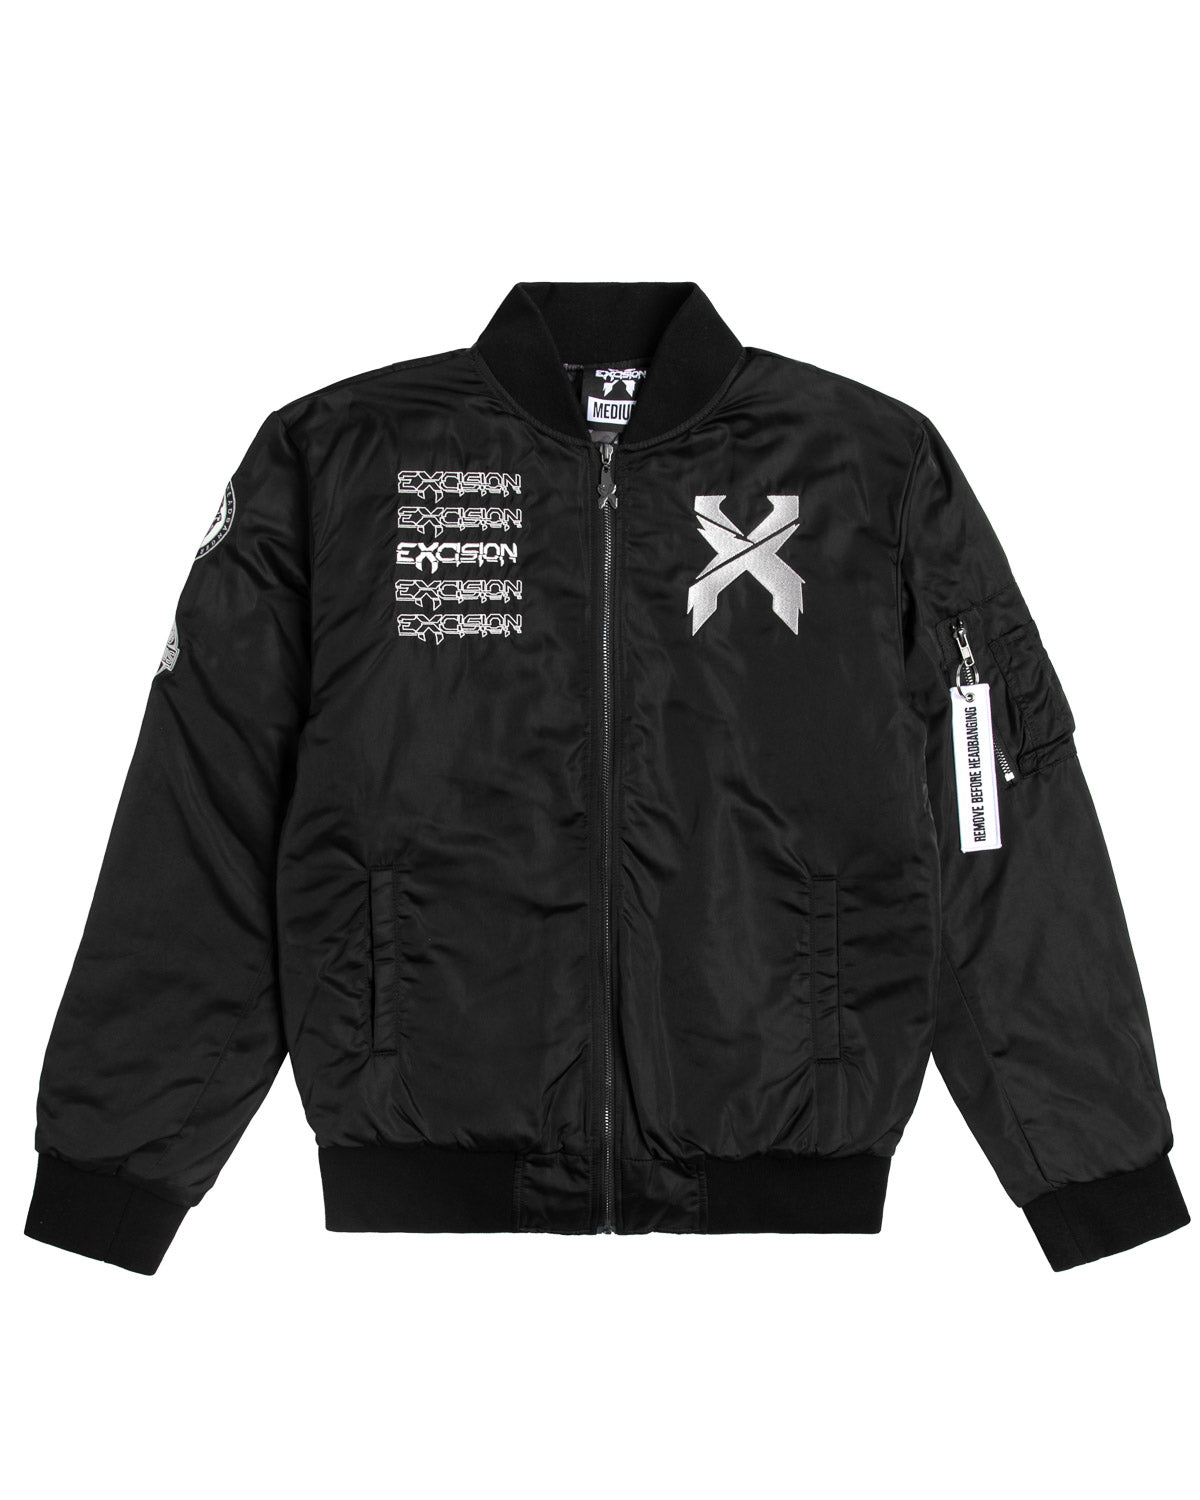 Excision Flight Jacket // Black